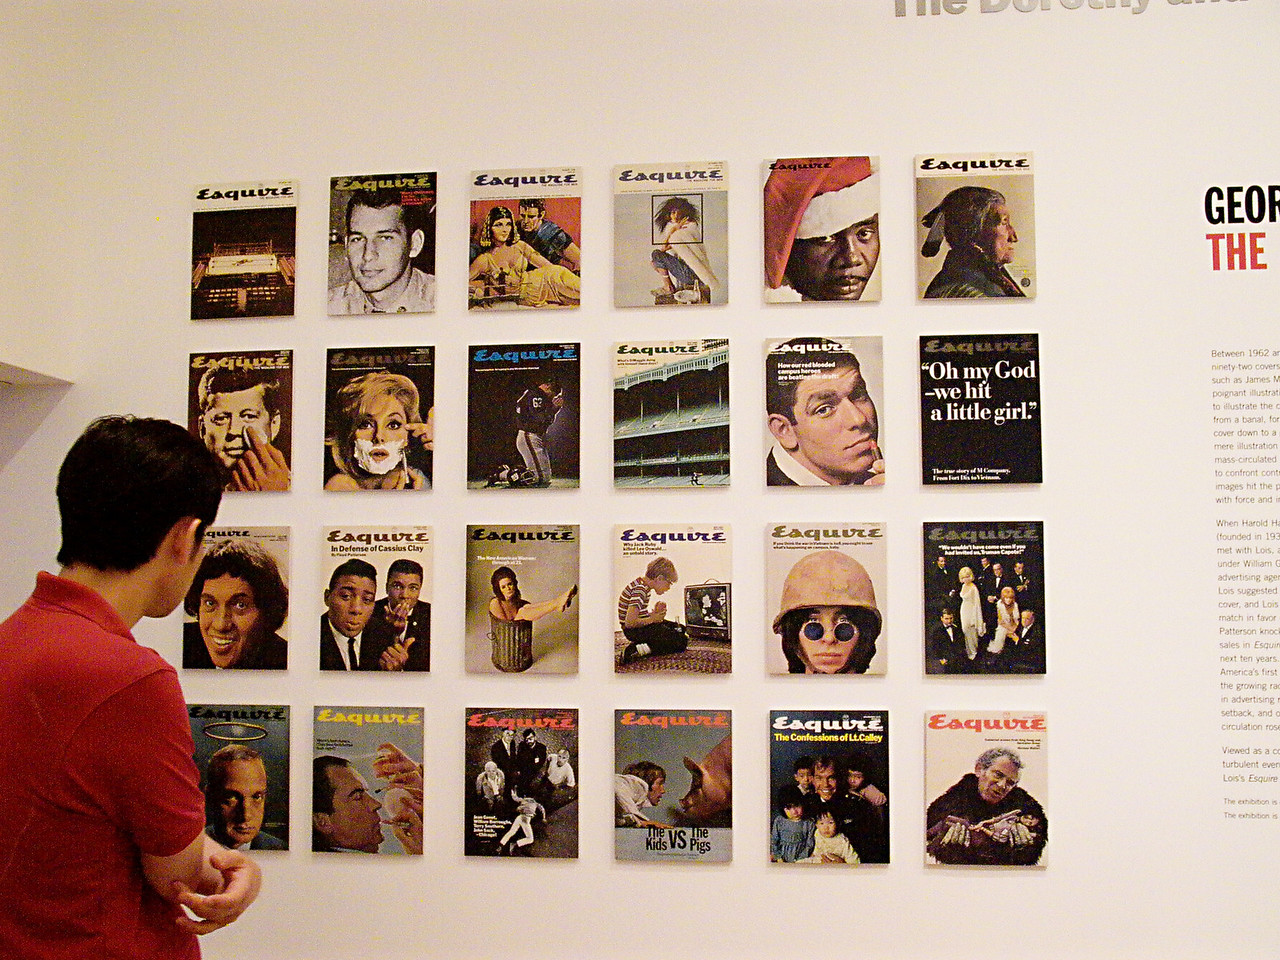 GEORGE LOIS EXHIBIT AT THE MUSEUM OF MODERN ART, NEW YORK- Digilux 1 ISO 200